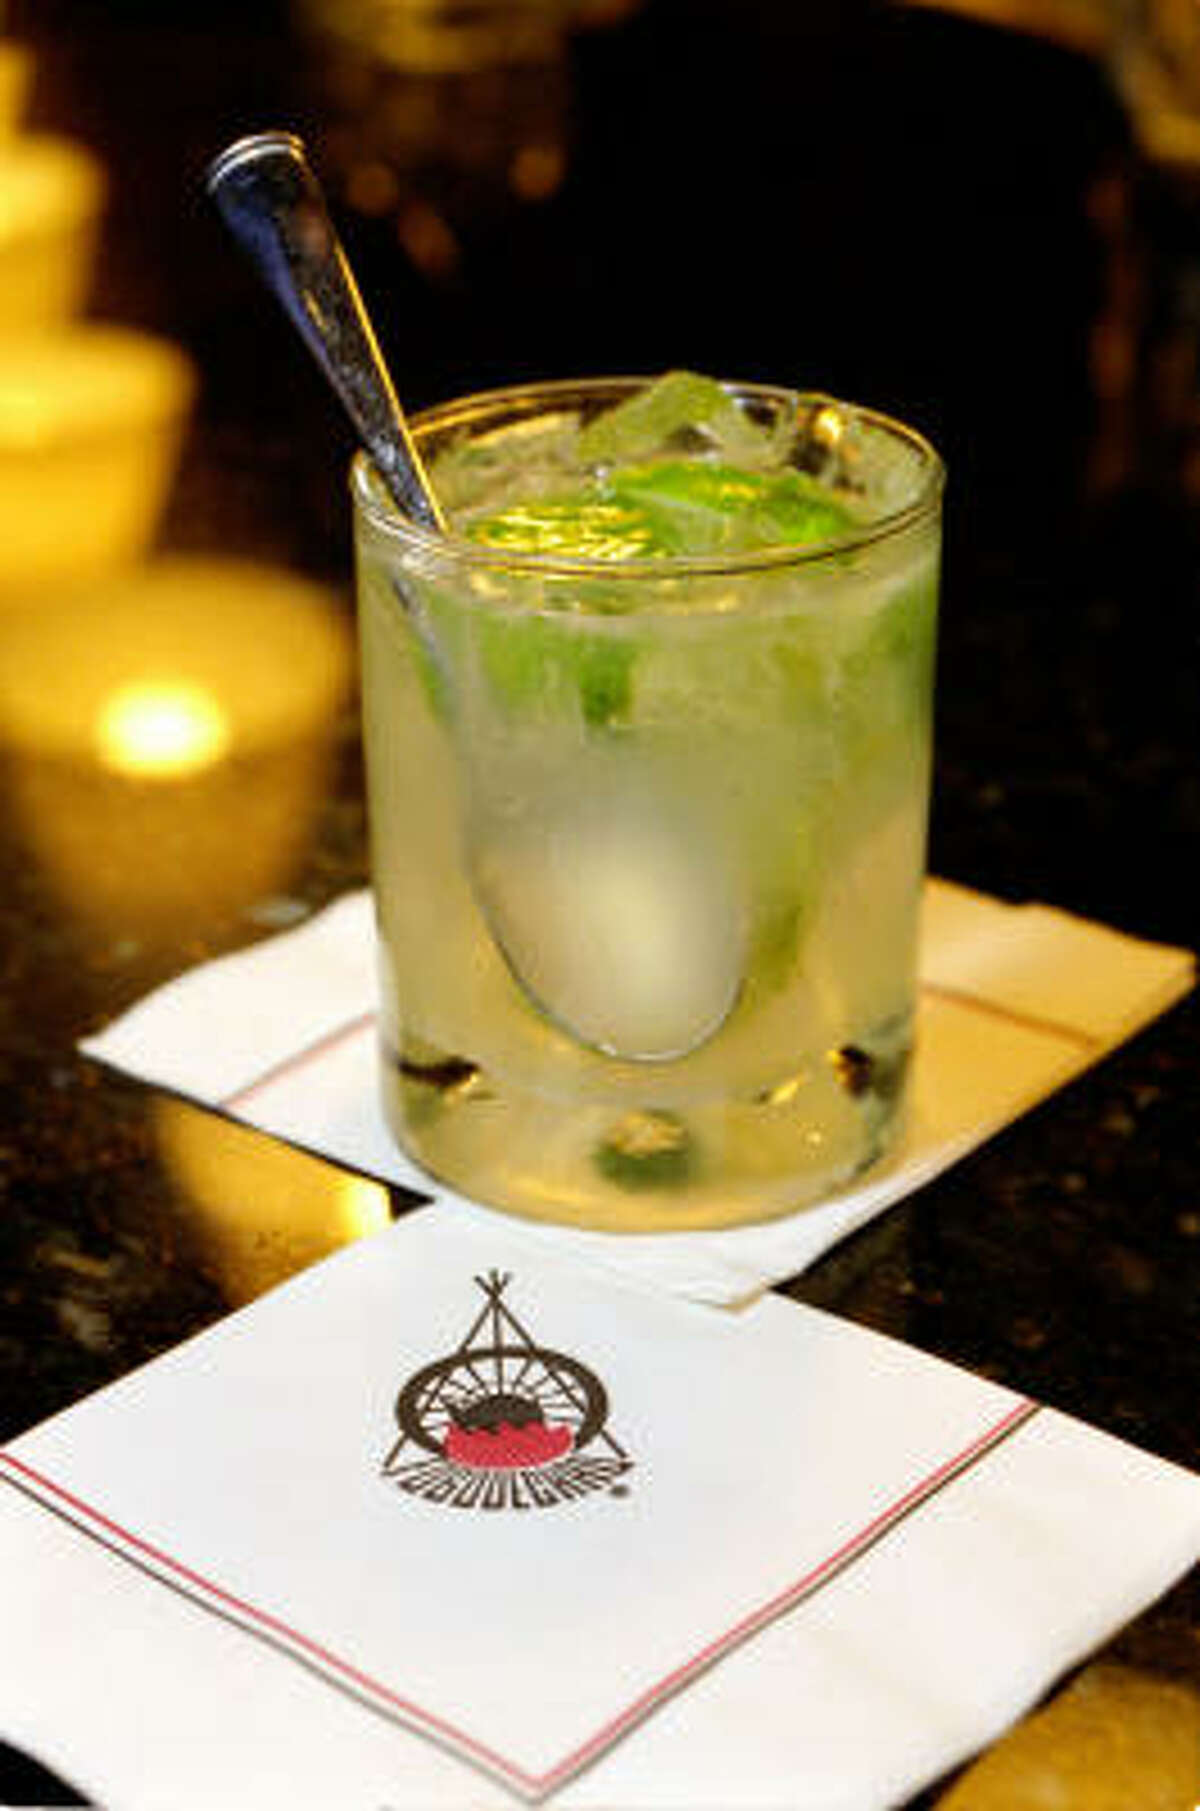 The Brazilian national drink caipirinha is the beverage of choice at Fogo de Chao.